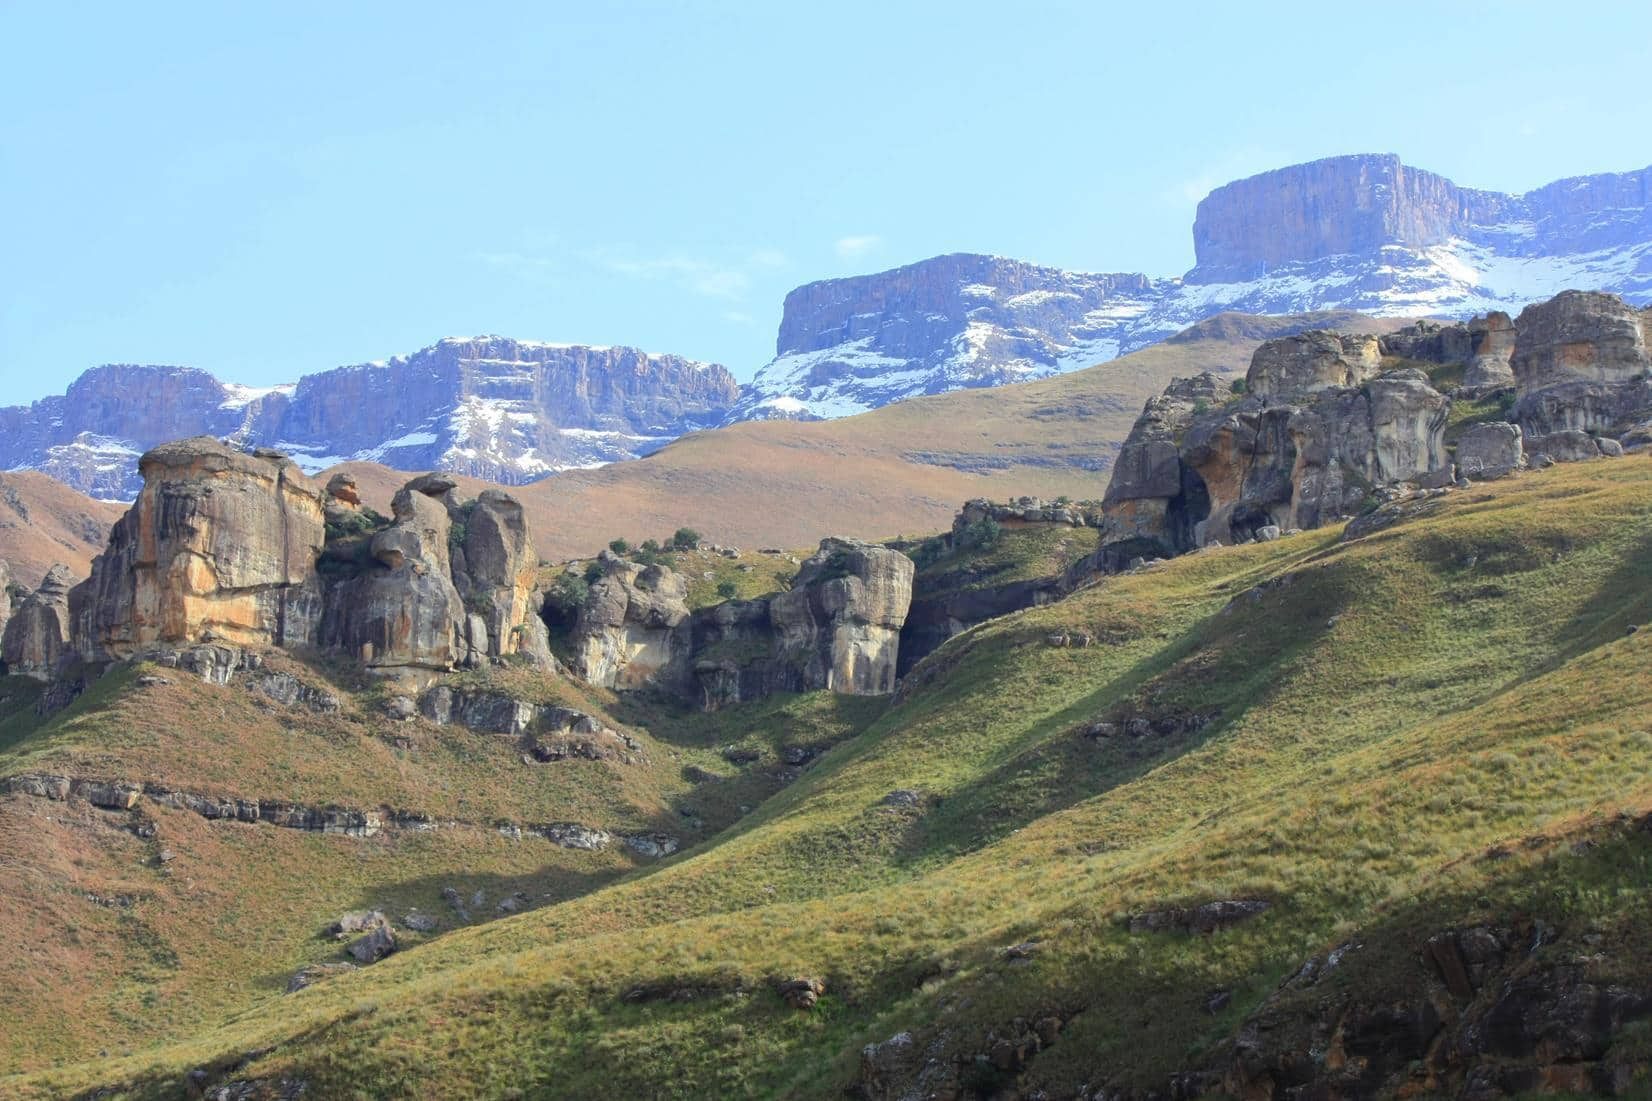 The tops of the Drakensberg mountains were capped with snow.